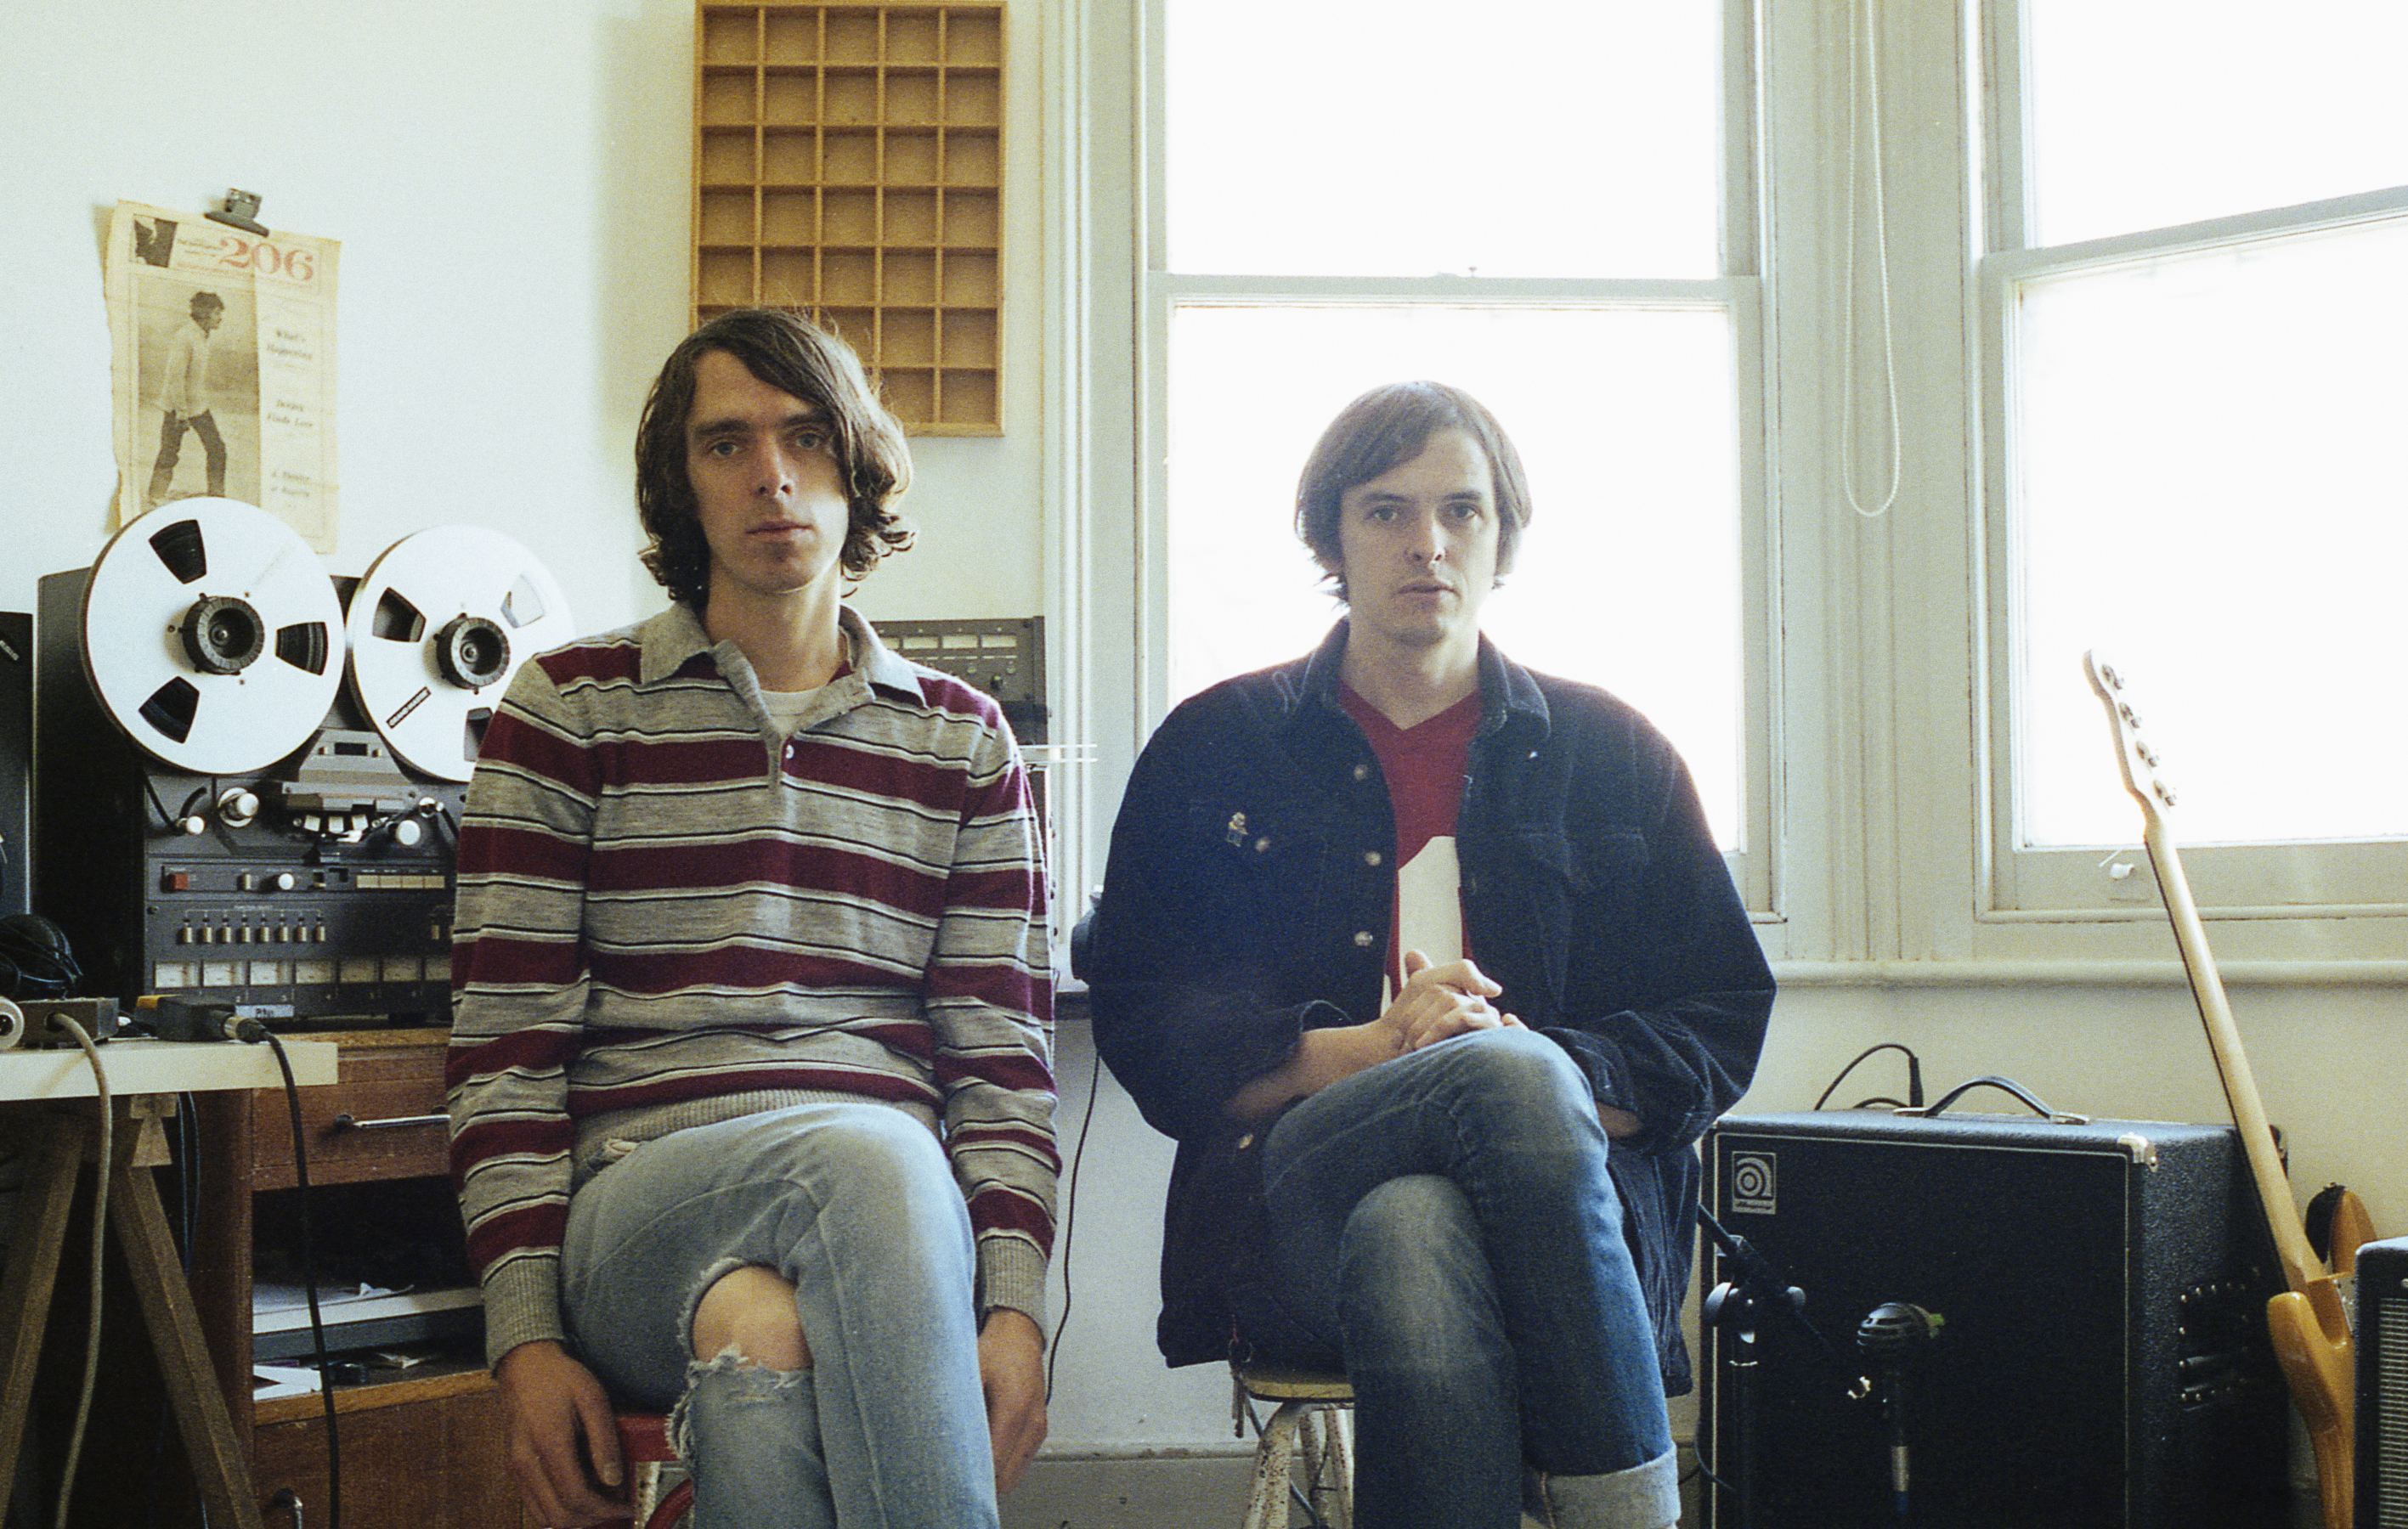 Ultimate Painting aka Jack Cooper and James Hoare are streaming their forthcoming LP 'Green Lanes'